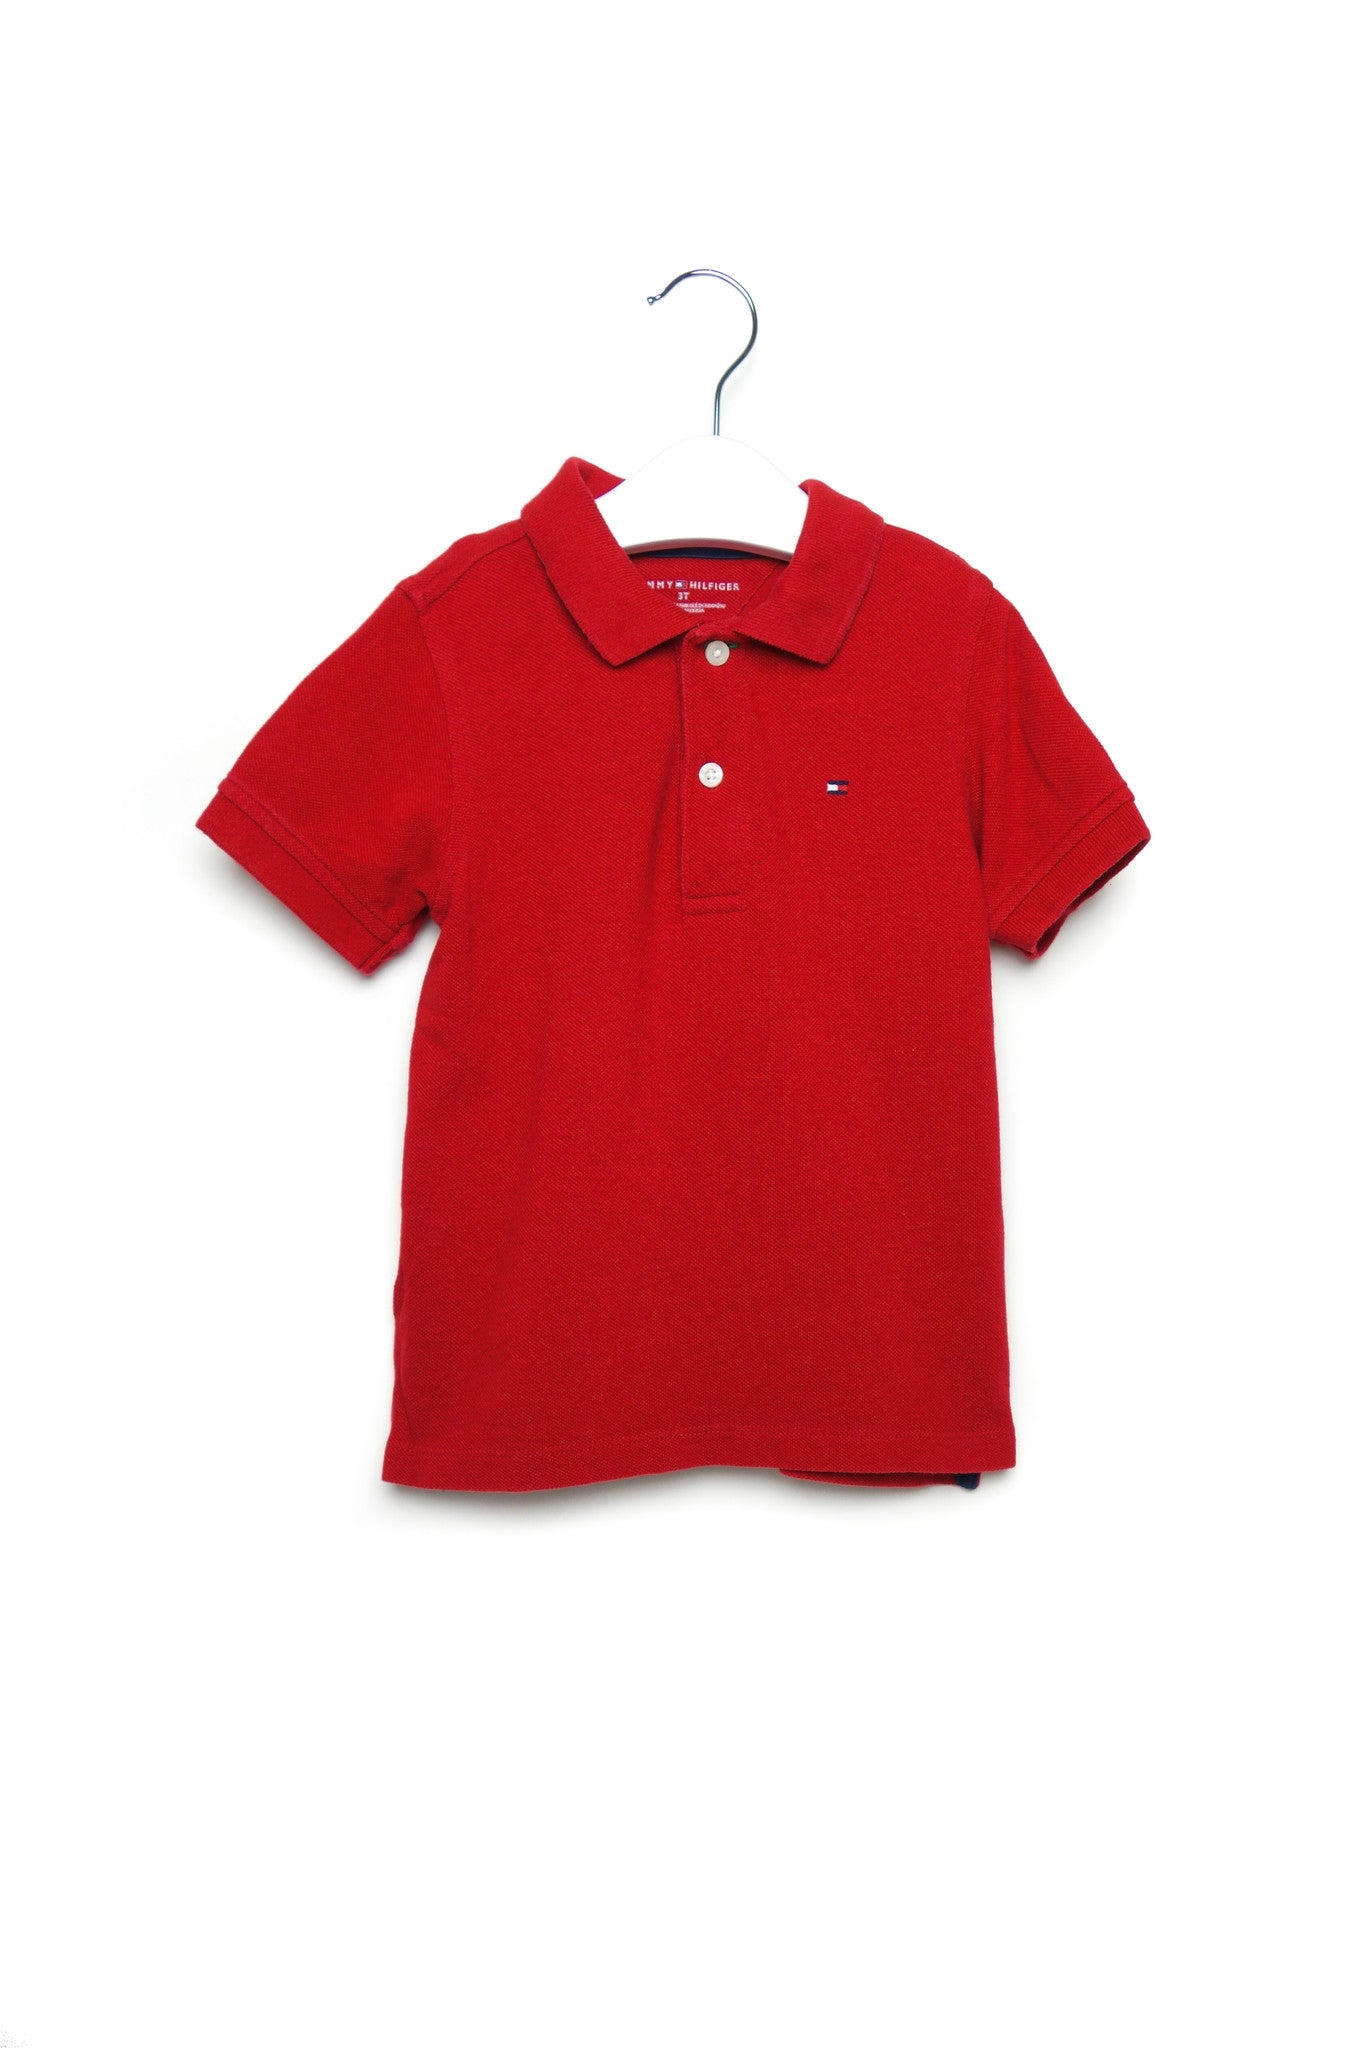 10001568 Tommy Hilfiger Kids~Polo 3T at Retykle